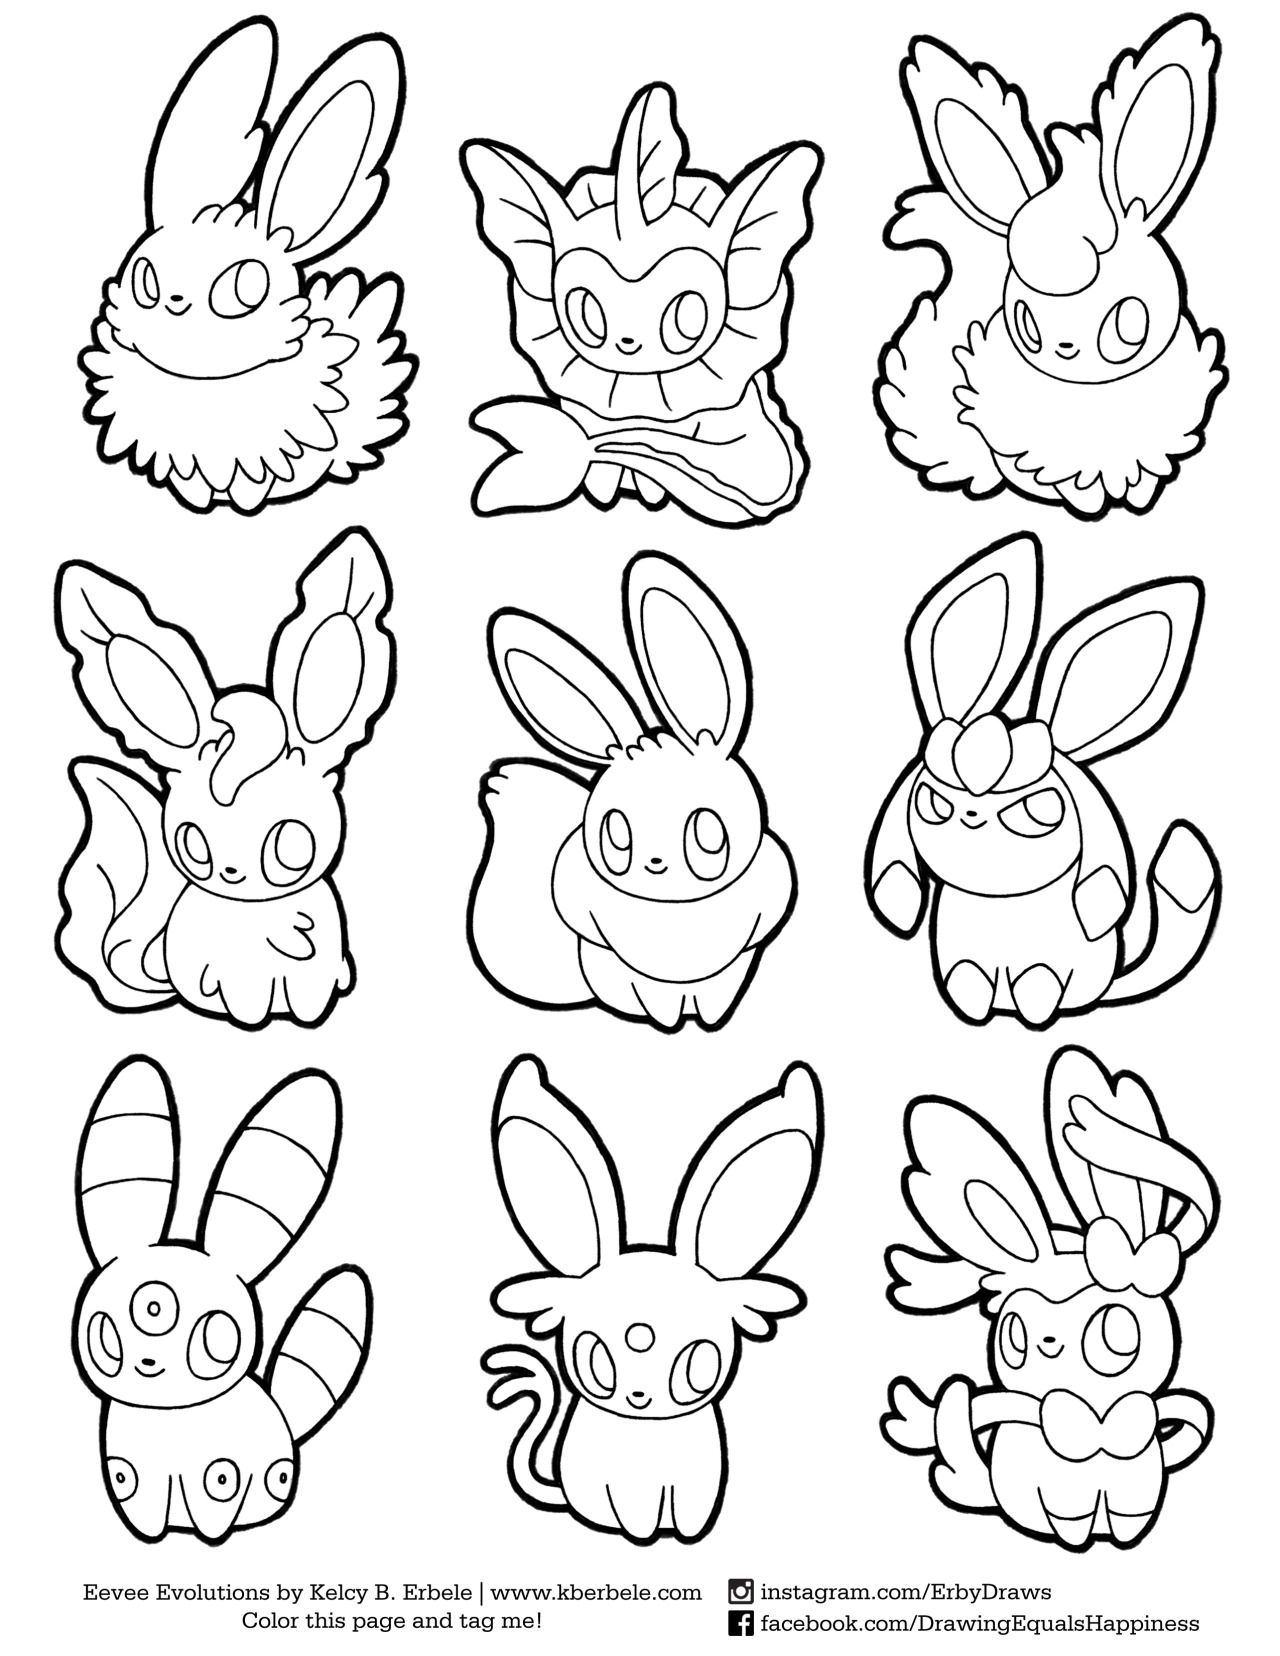 eeveelution coloring pages Pin by Jaiie on Coloring! | Pinterest | Pokemon coloring pages  eeveelution coloring pages